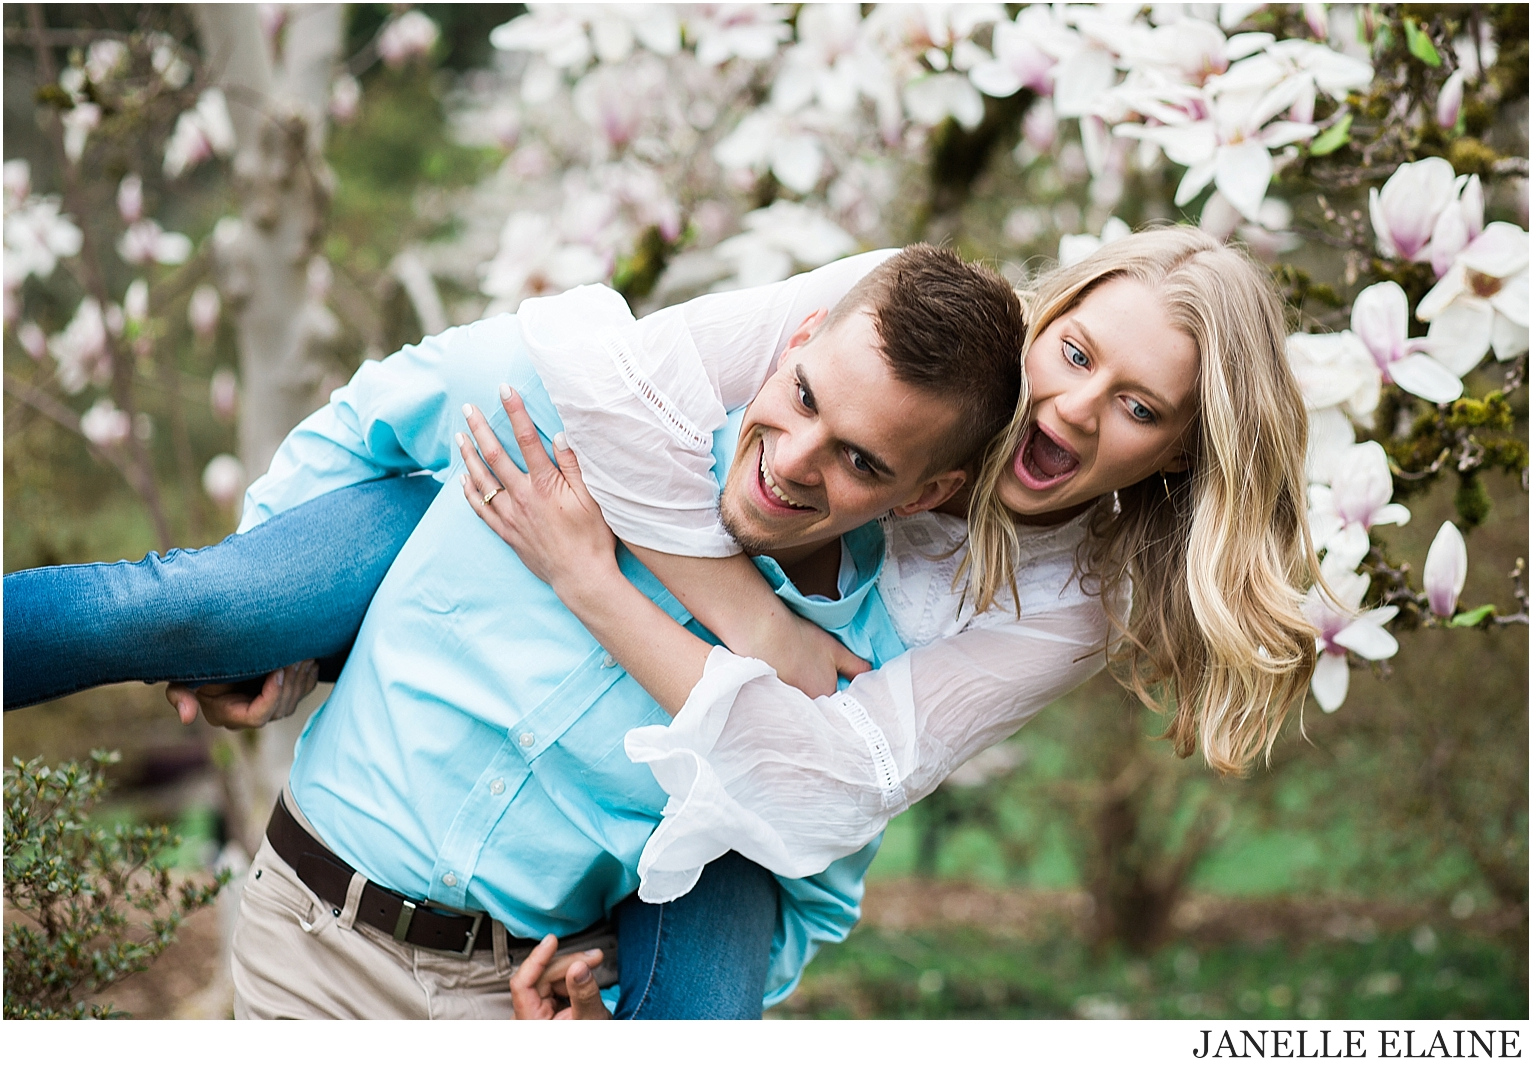 tricia and nate engagement photos-janelle elaine photography-163.jpg